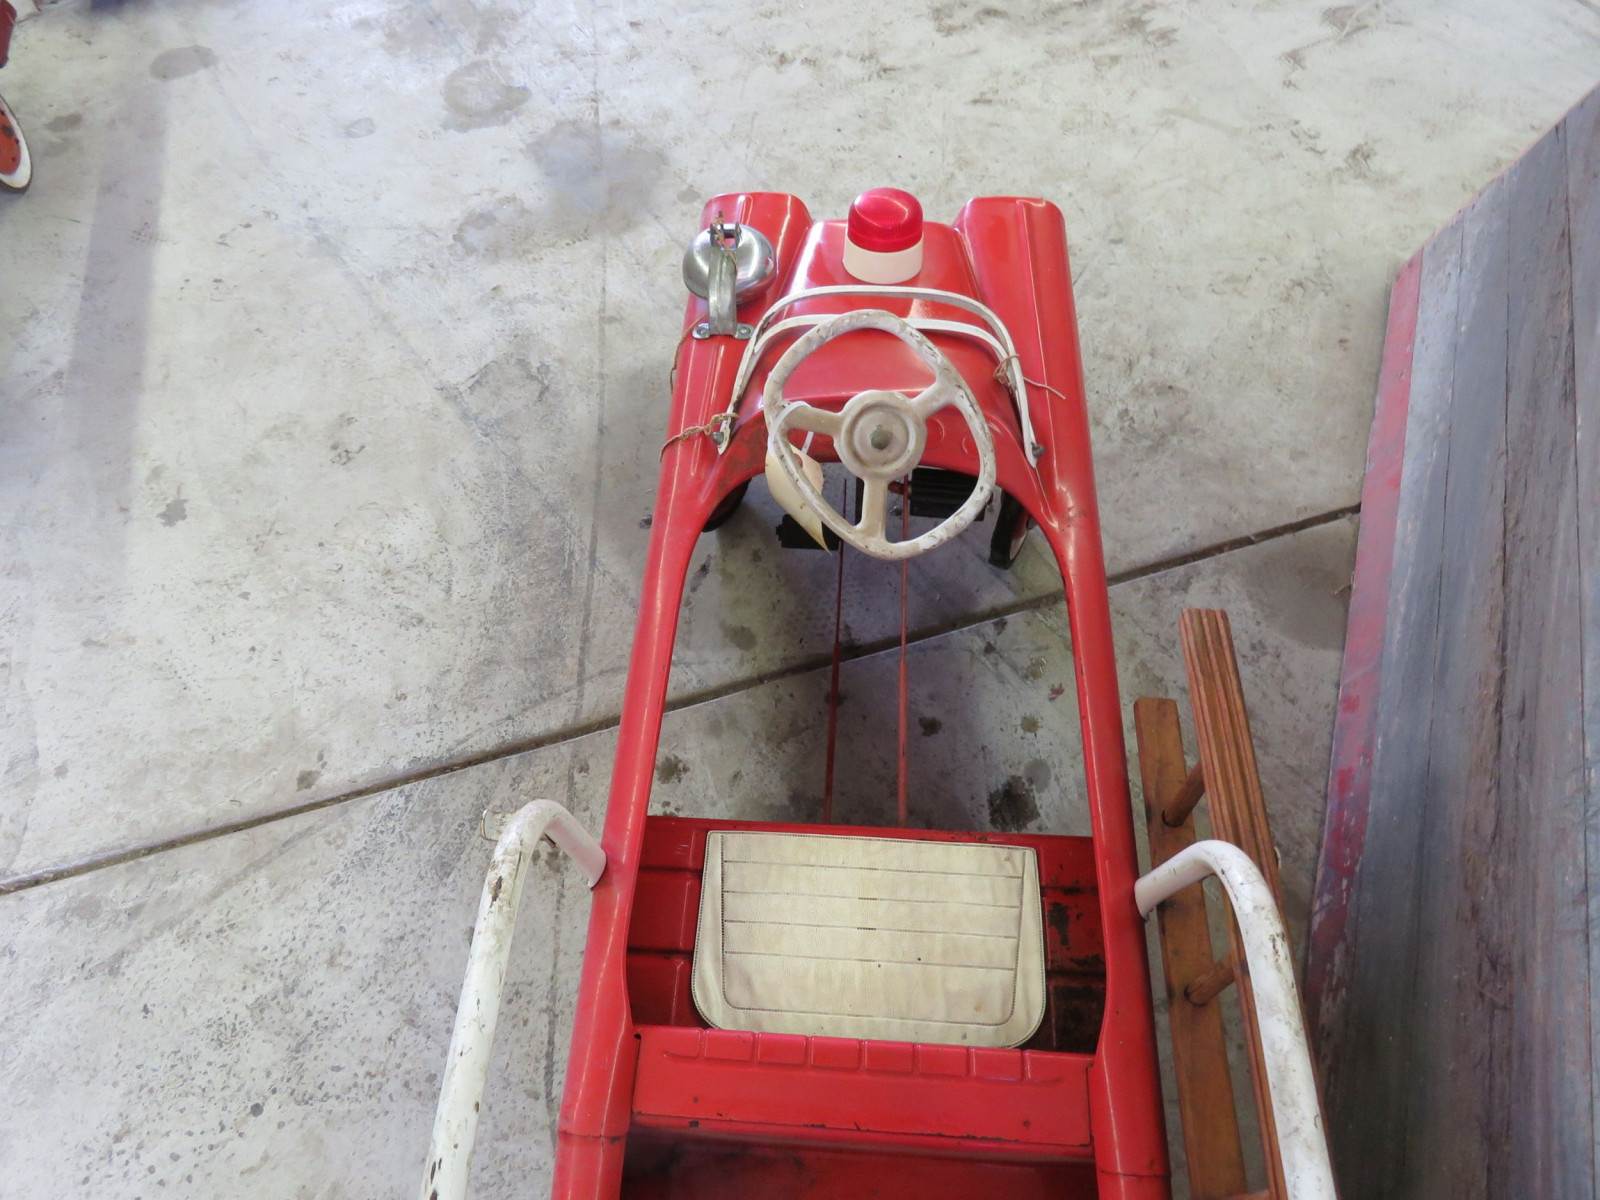 1955 Murray Station Wagon Pedal Car - Image 4